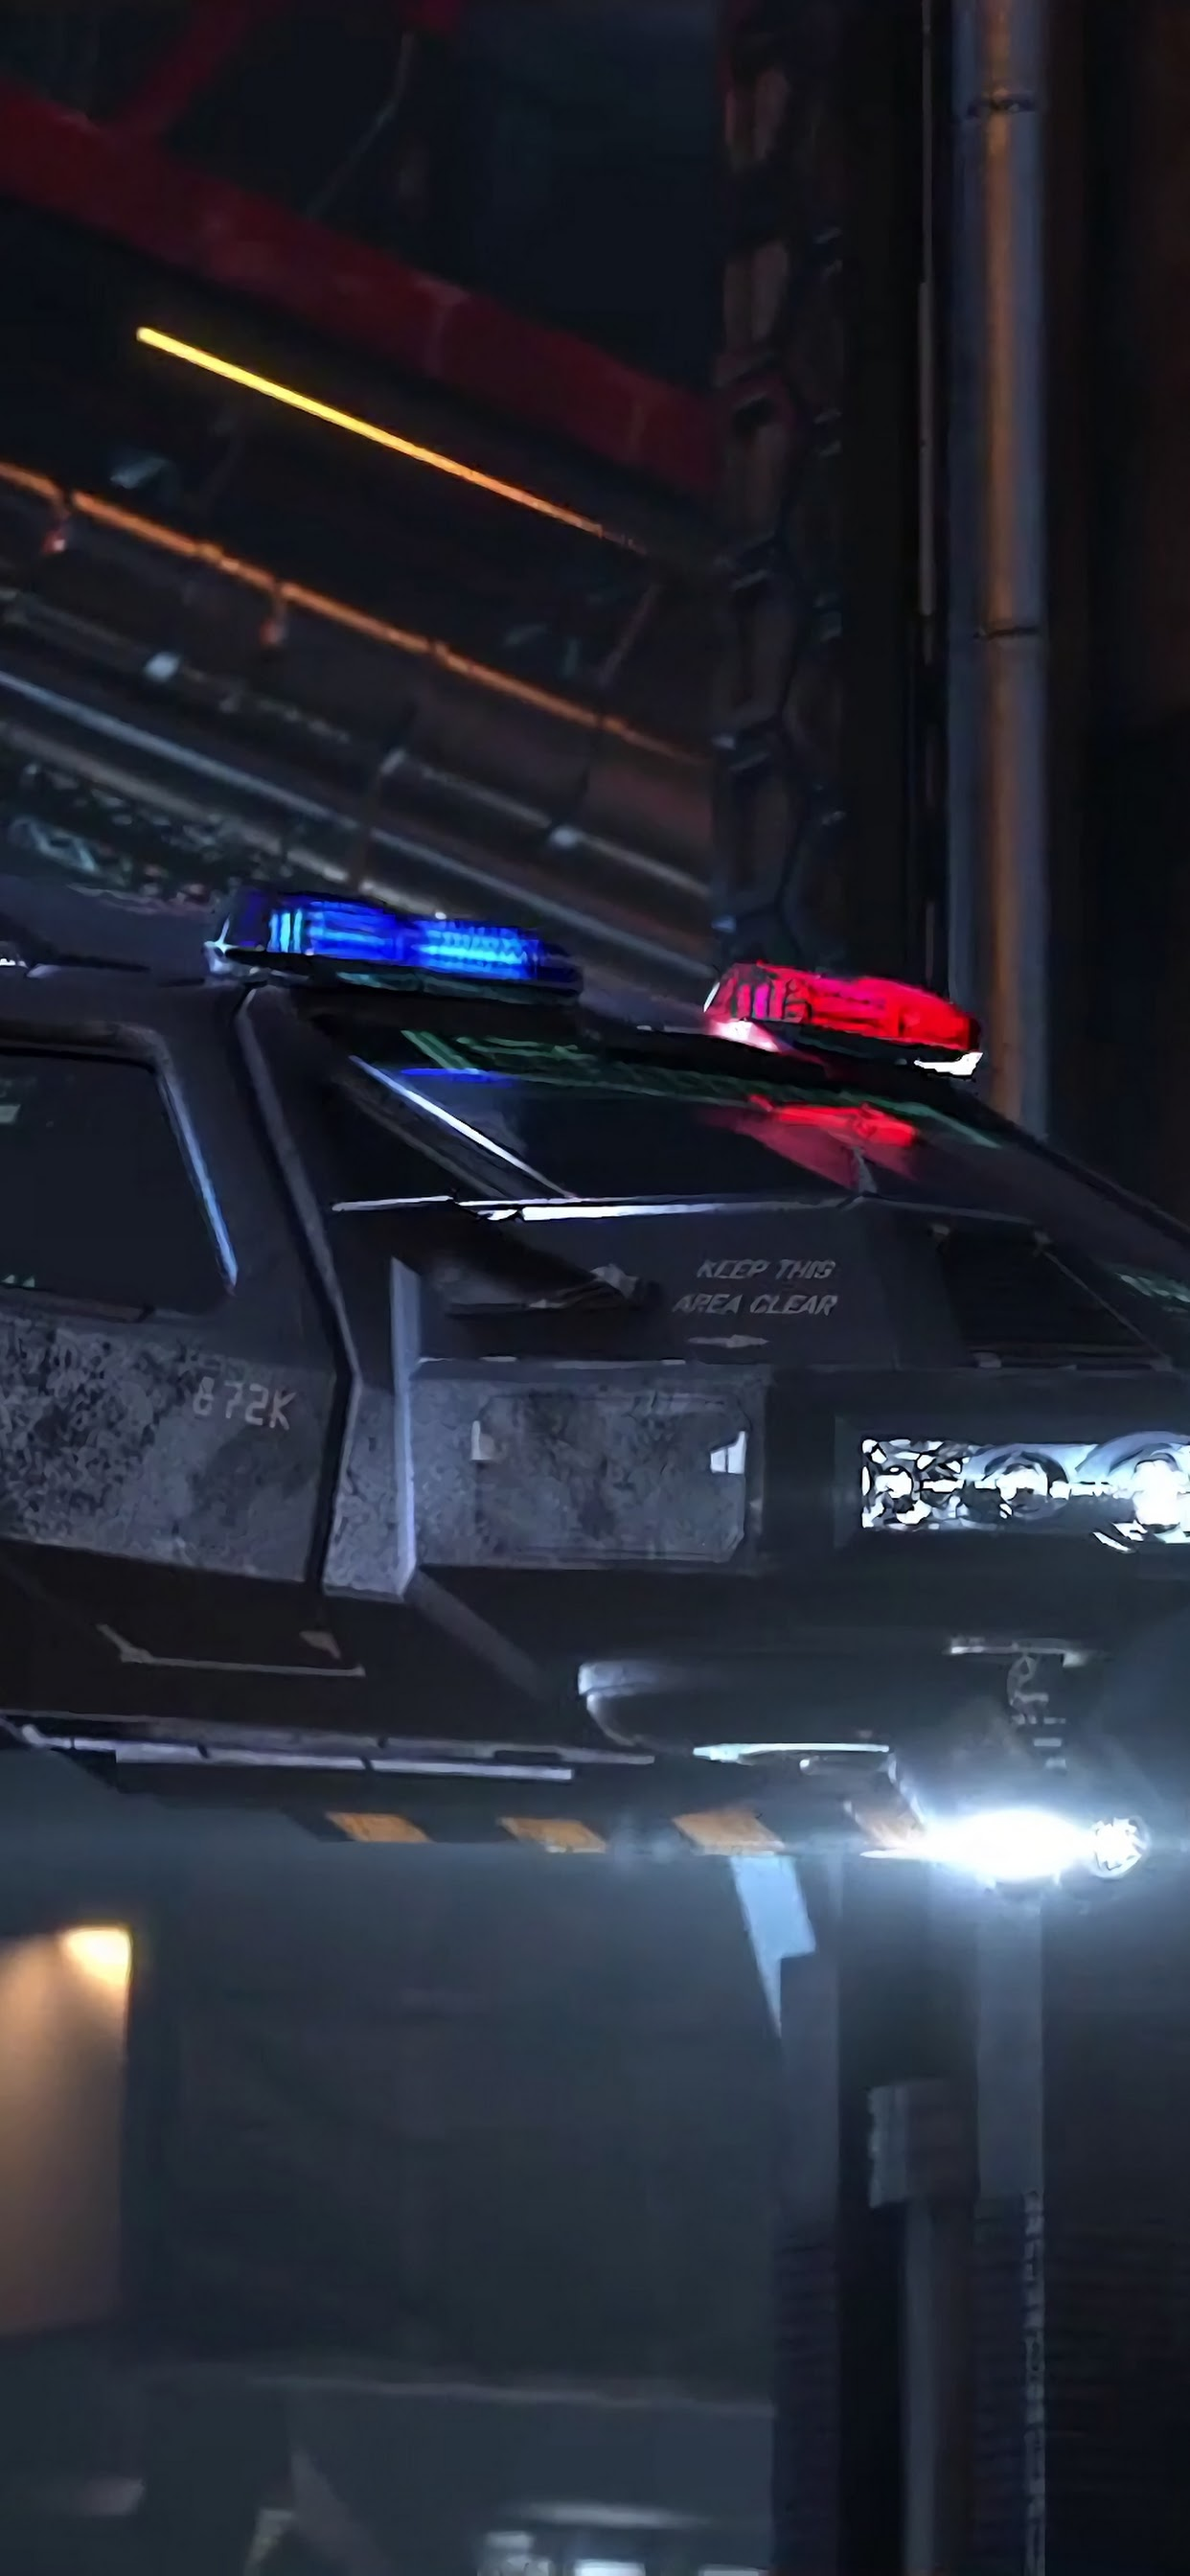 Cyberpunk 2077 Police Car 4k Iphone 11 Pro Wallpaper Cars 1242x2688 Wallpaper Teahub Io